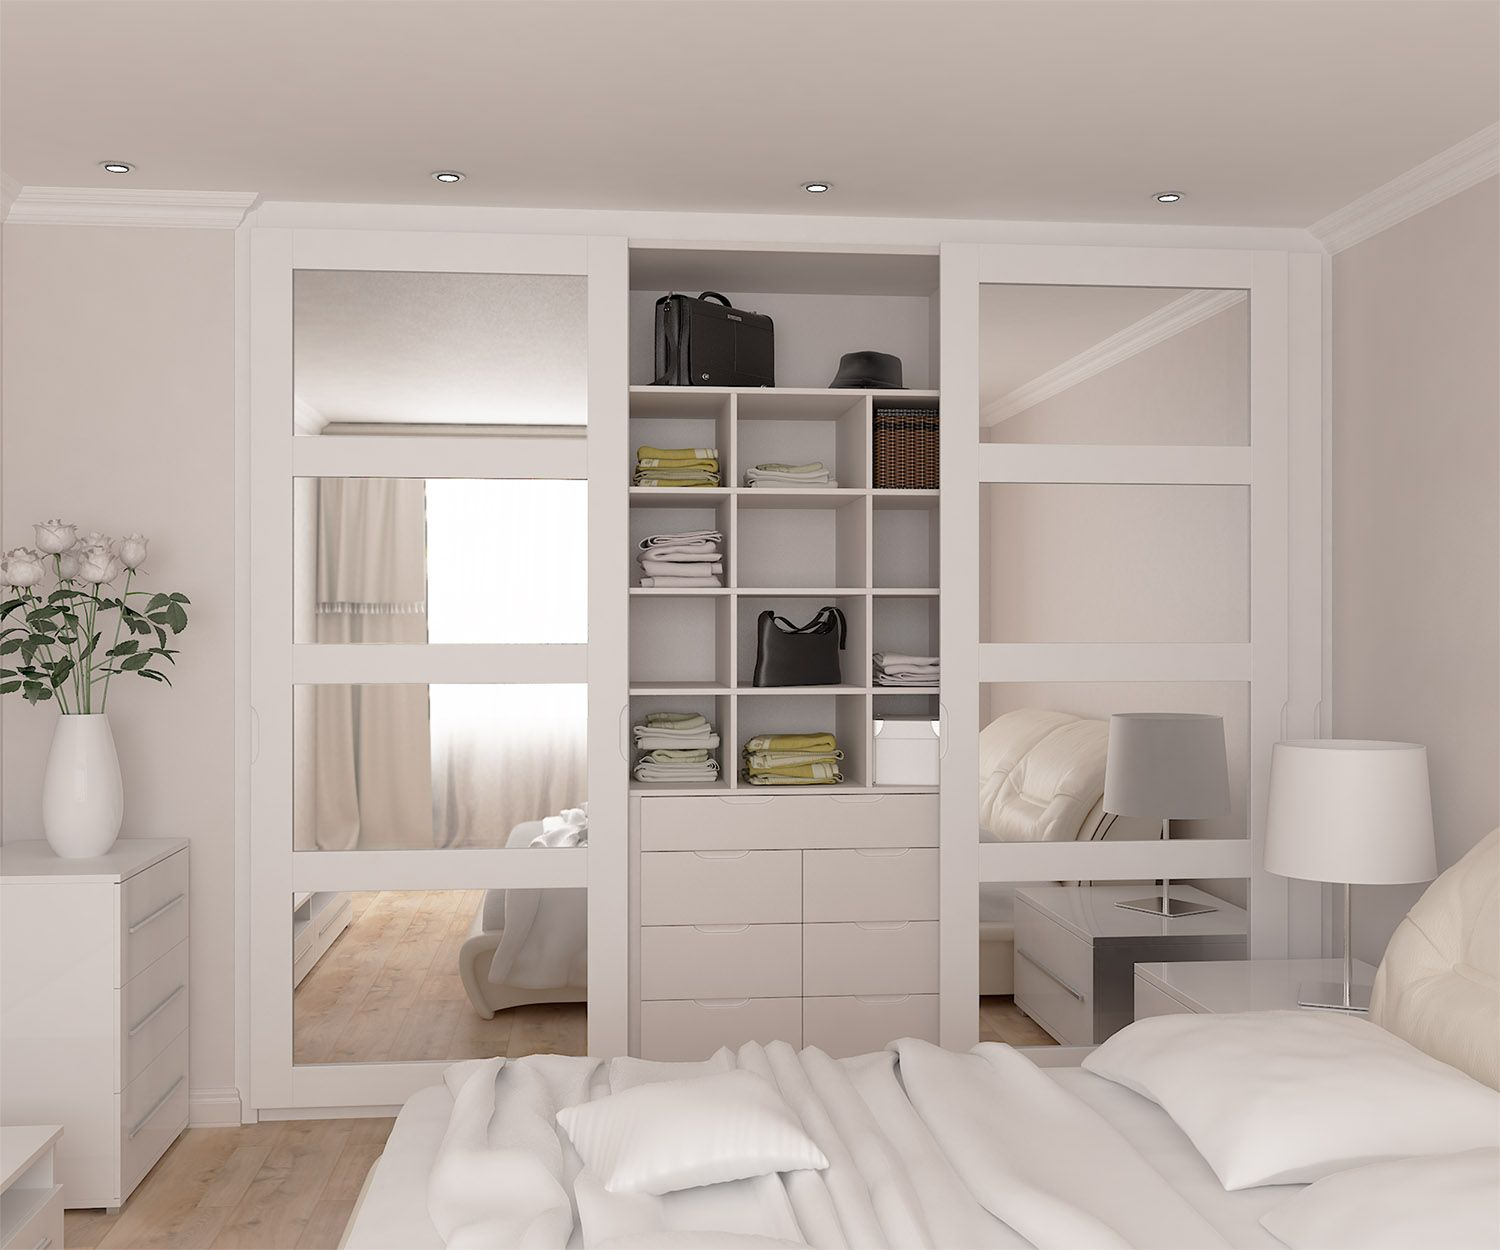 White Bedroom Wardrobes Fully Fitted Wardrobes Range With Mirrored Doors In Spray